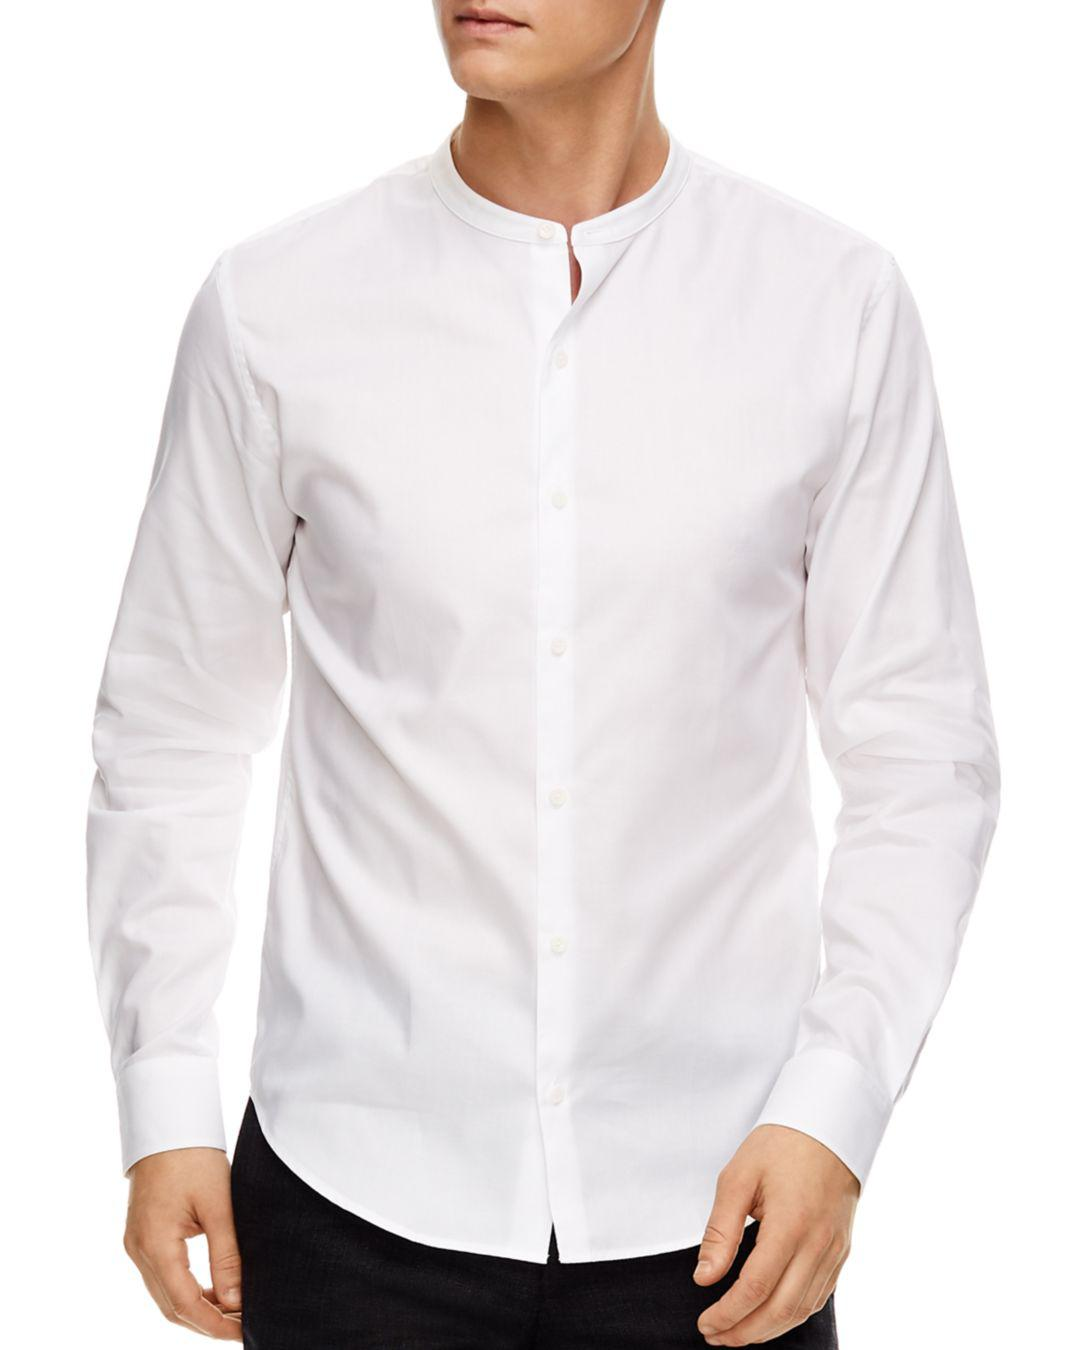 Sandro Oxford Banded Collar Slim Fit Button Down Shirt In White For